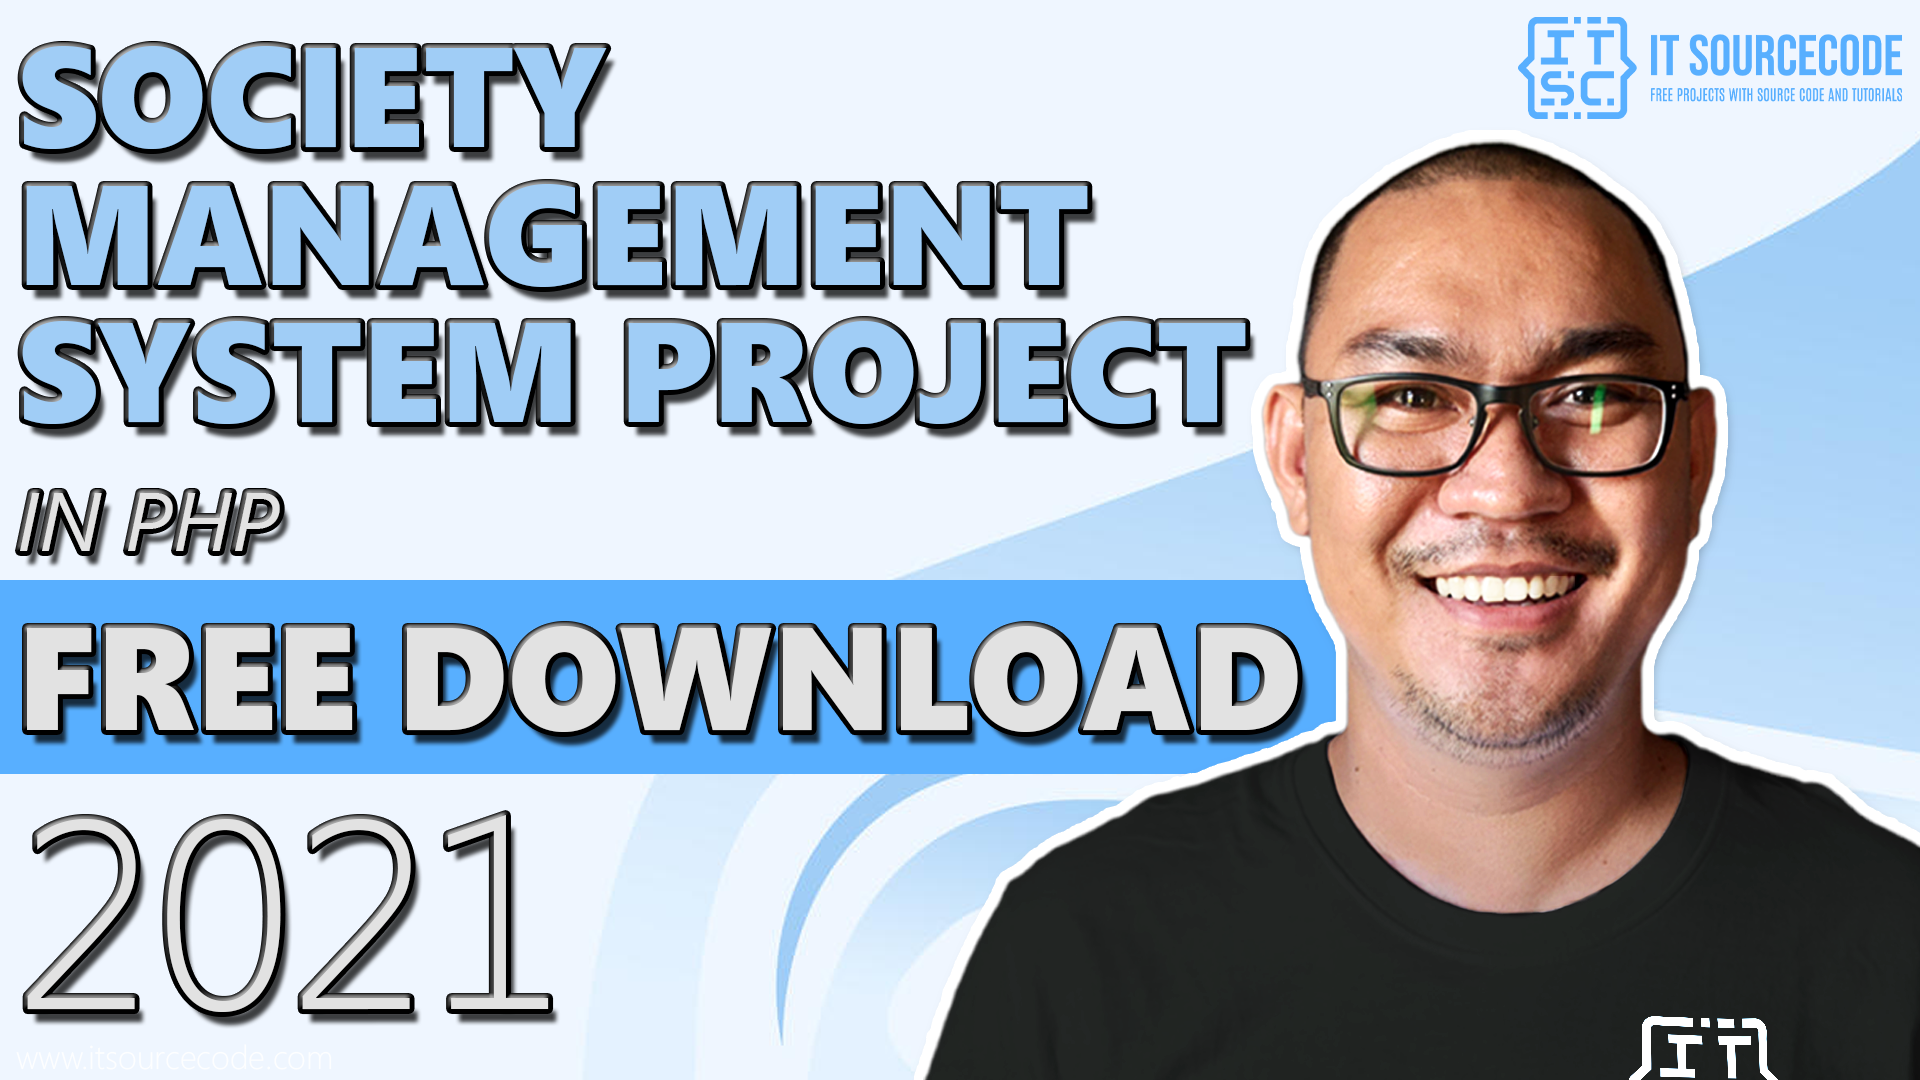 society management system project in php free download